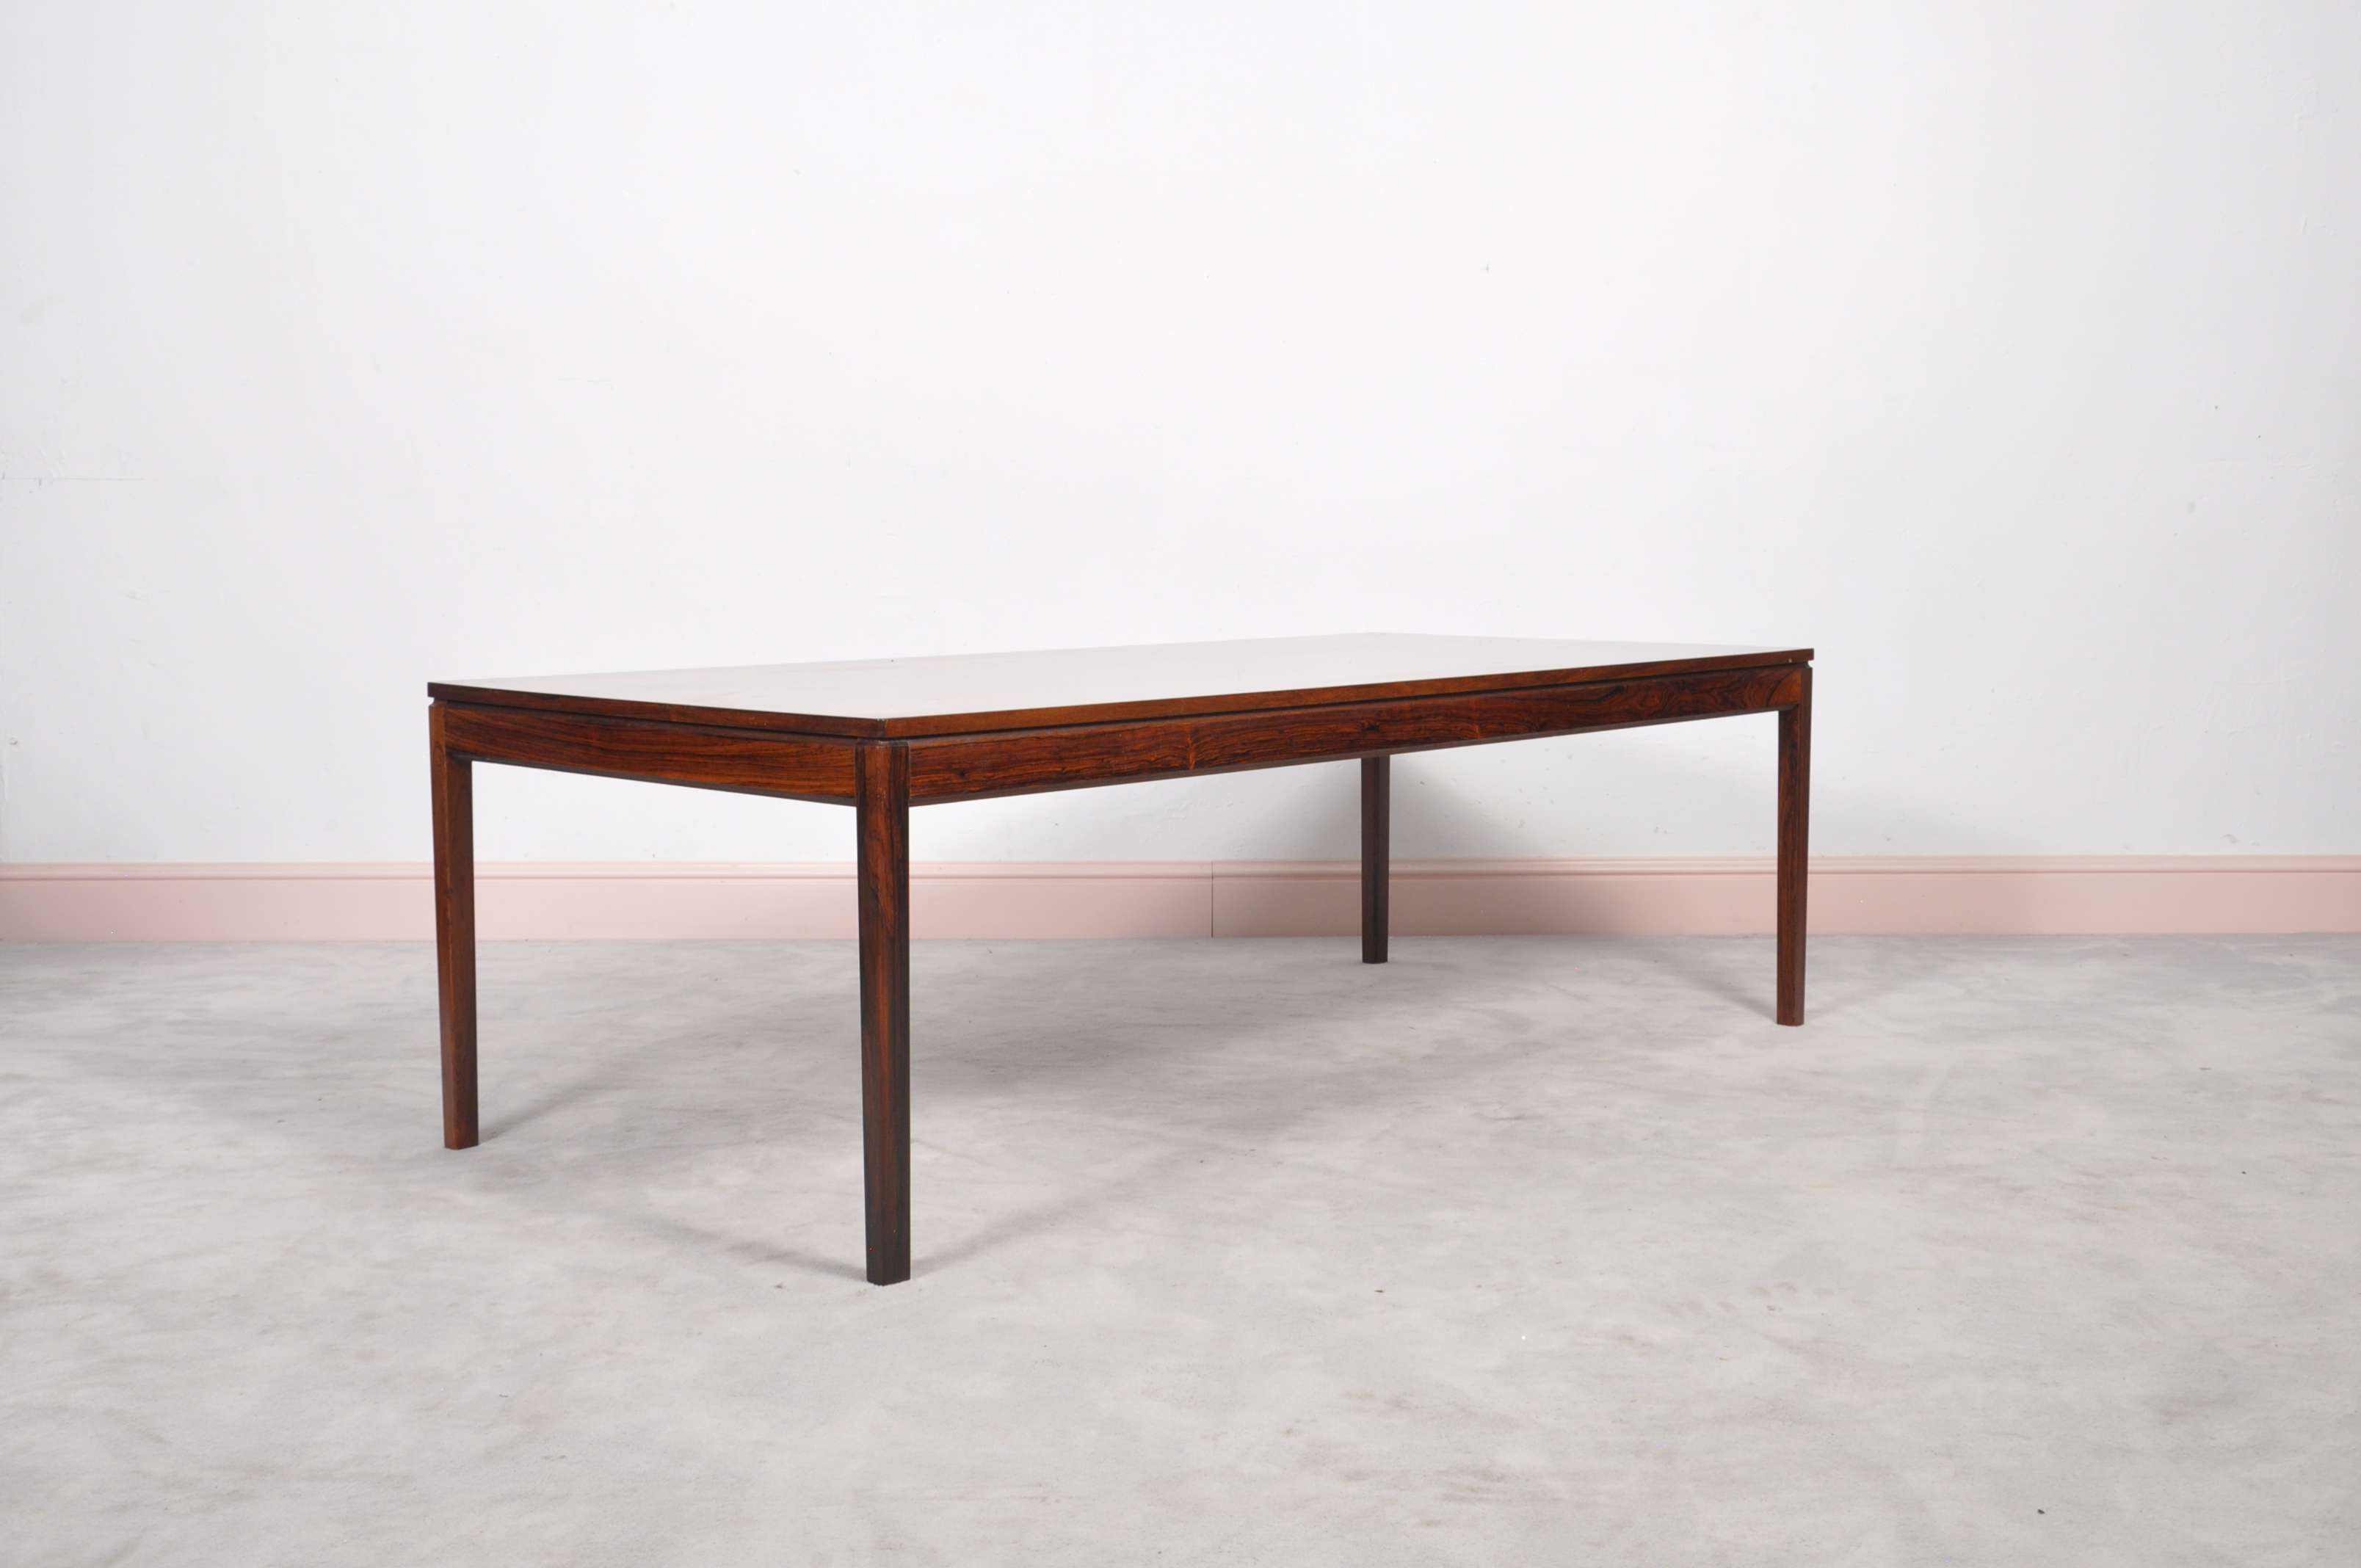 Preferred L Shaped Coffee Tables Within Coffee Tables : Danish Coffee Table In Teak With Glass Top Retros (View 15 of 20)